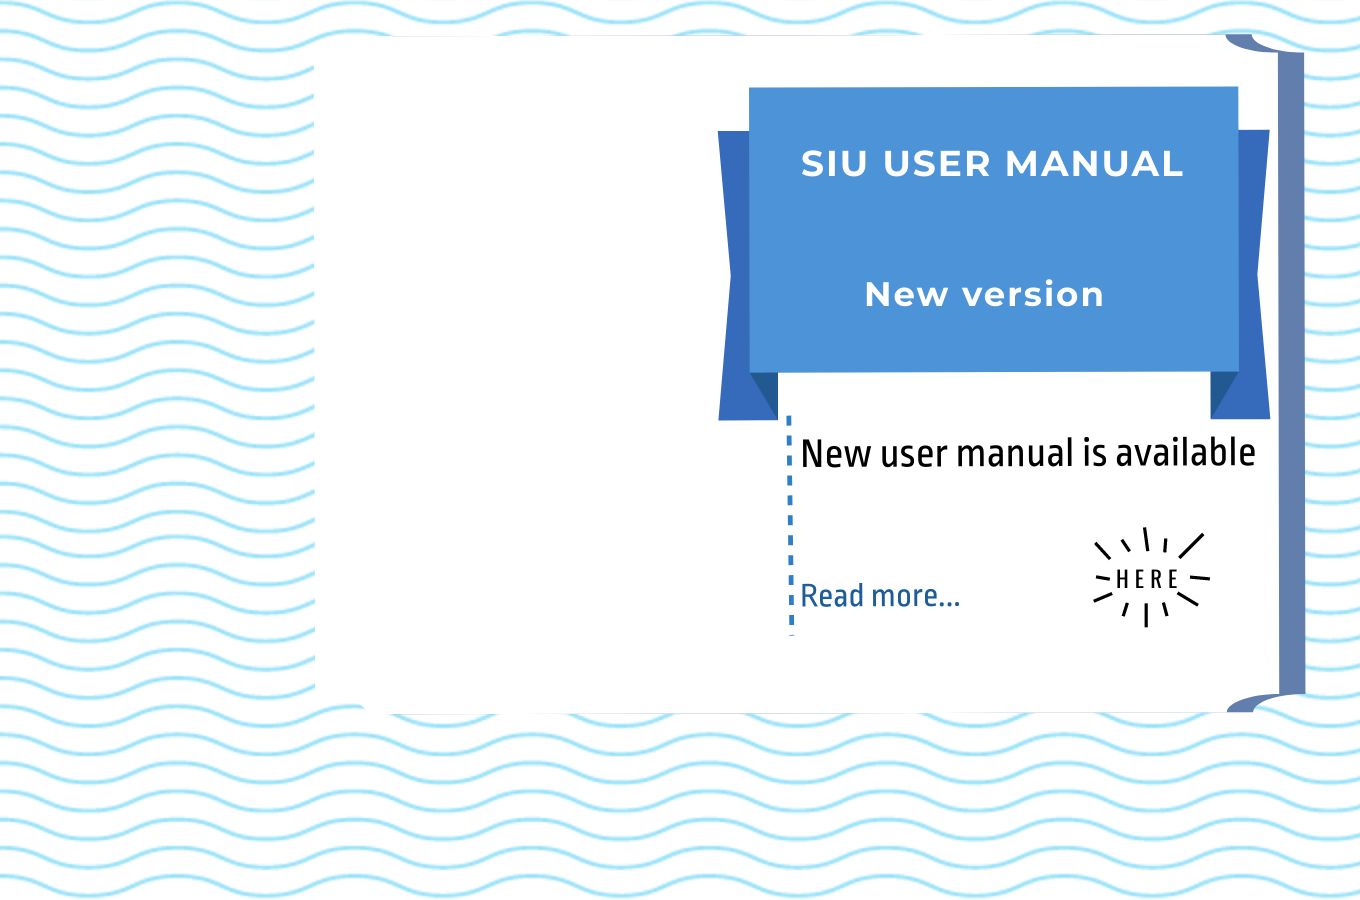 SIU User Manual: new version